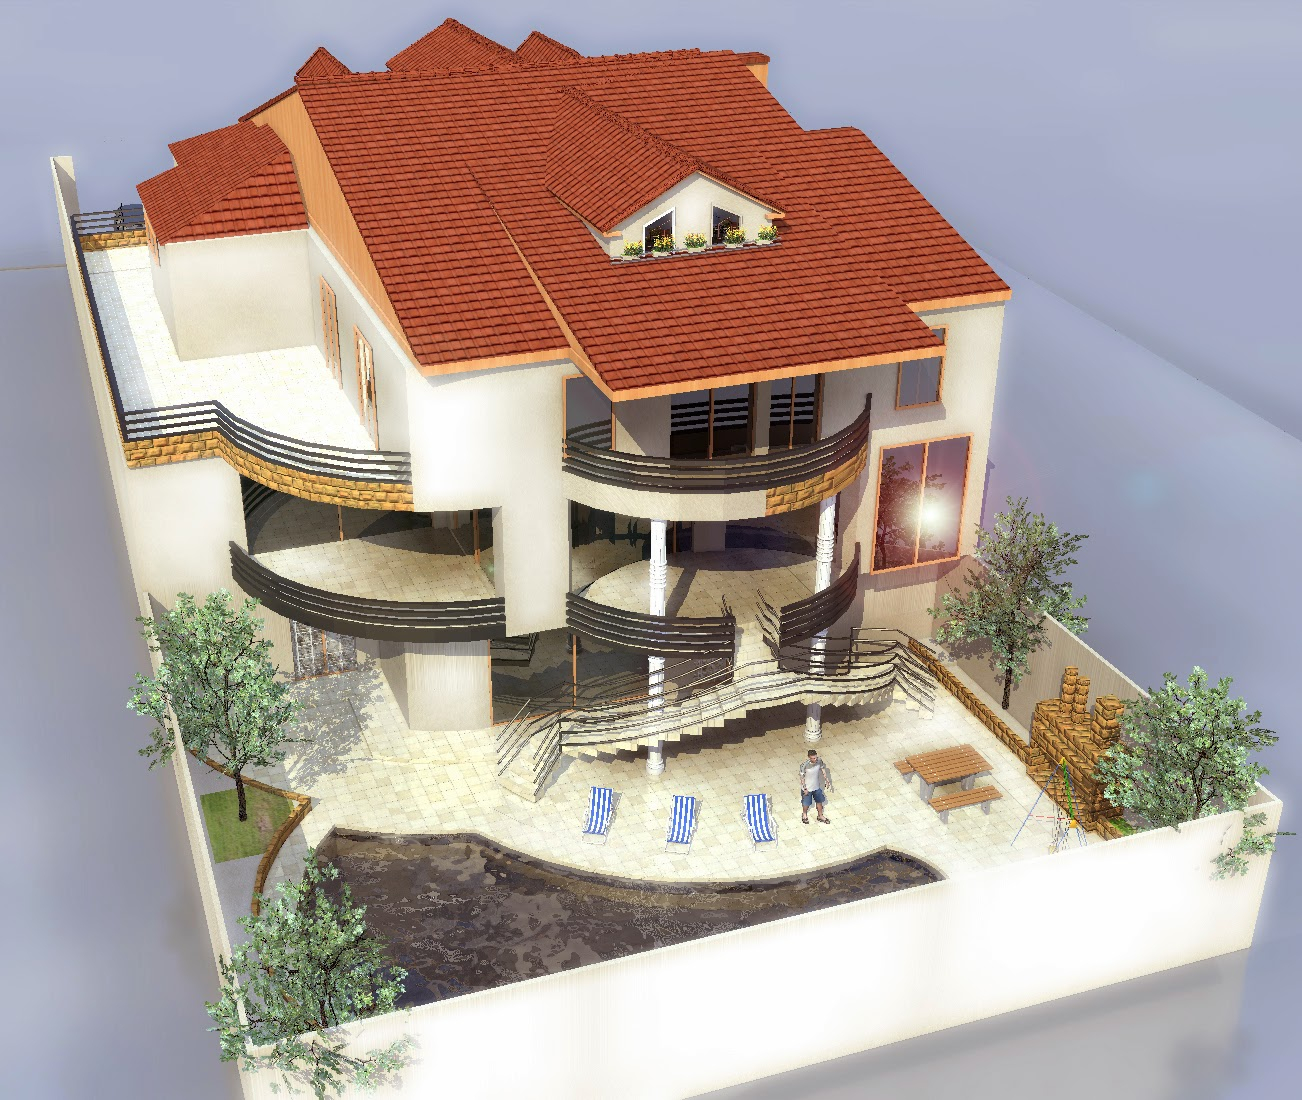 Plan architecte maison gratuit for Architecte plan maison gratuit